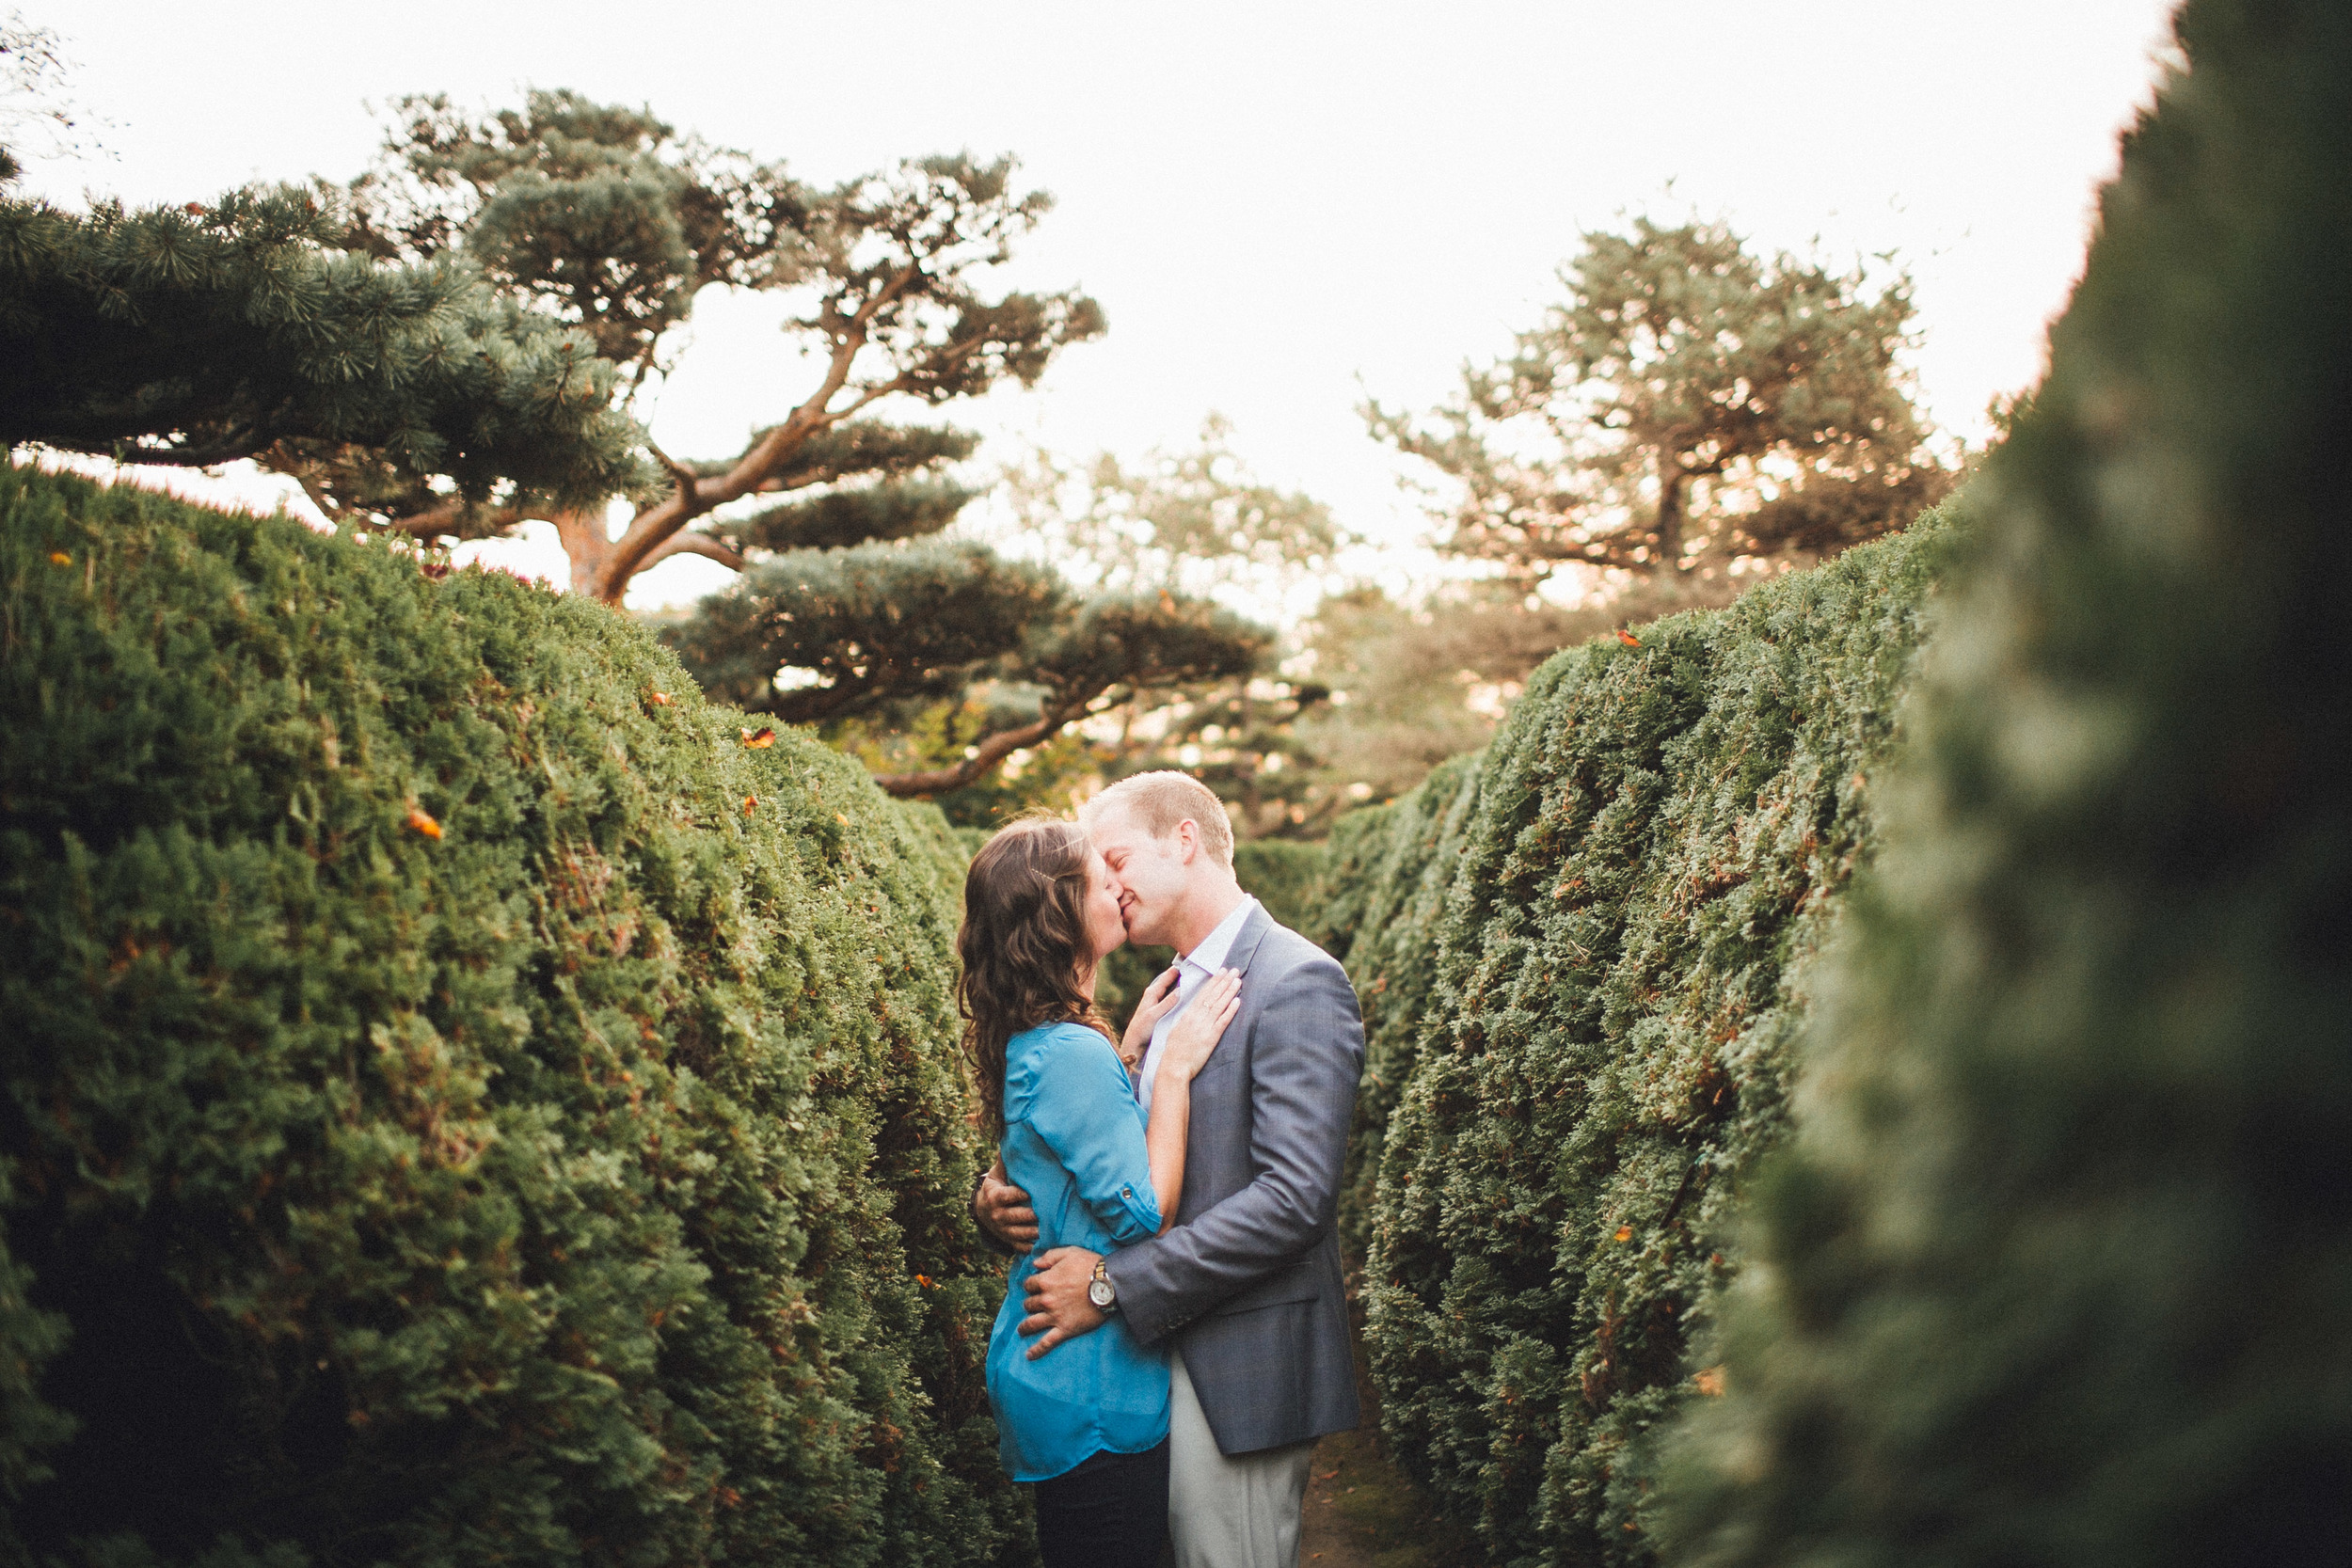 mayden photography_chicago botanical gardens engagement photo-3.jpg